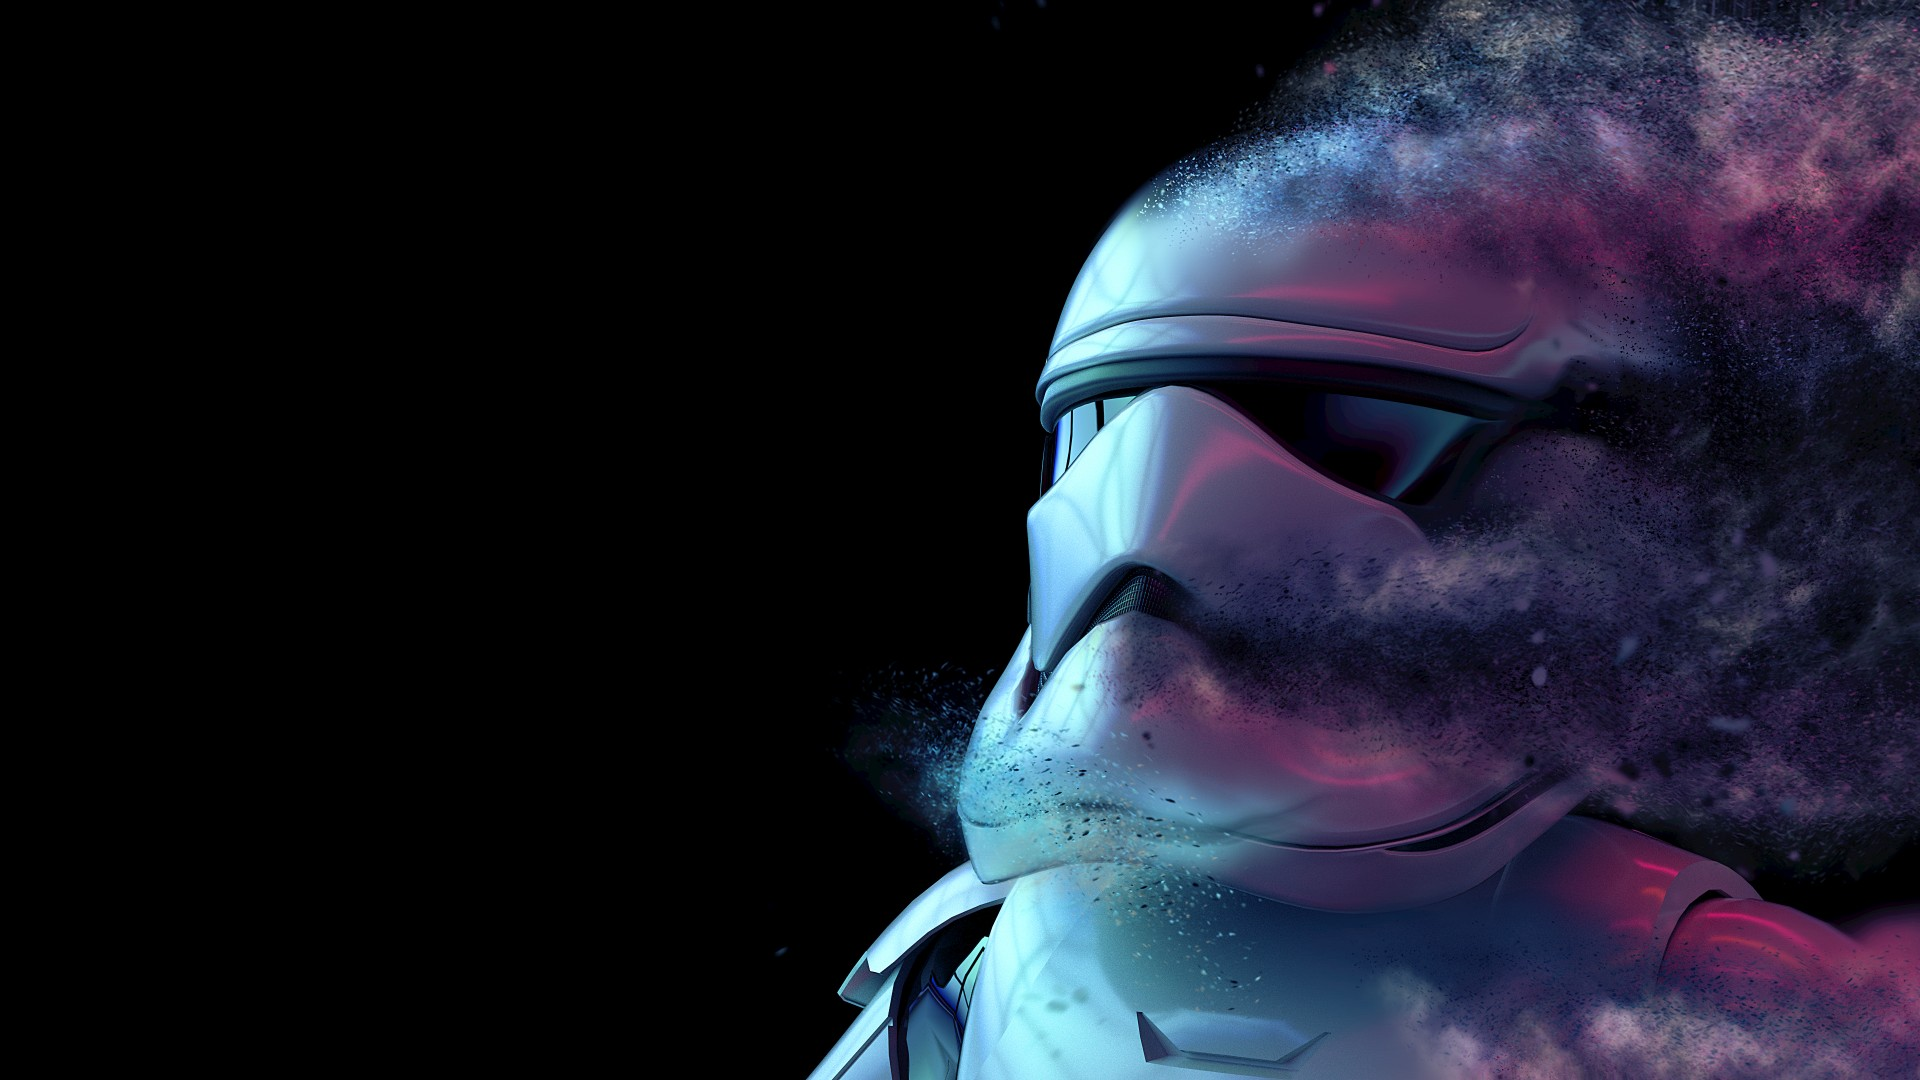 Cute Iphone 5s Wallpaper Storm Trooper Digital Art 4k Wallpapers Hd Wallpapers